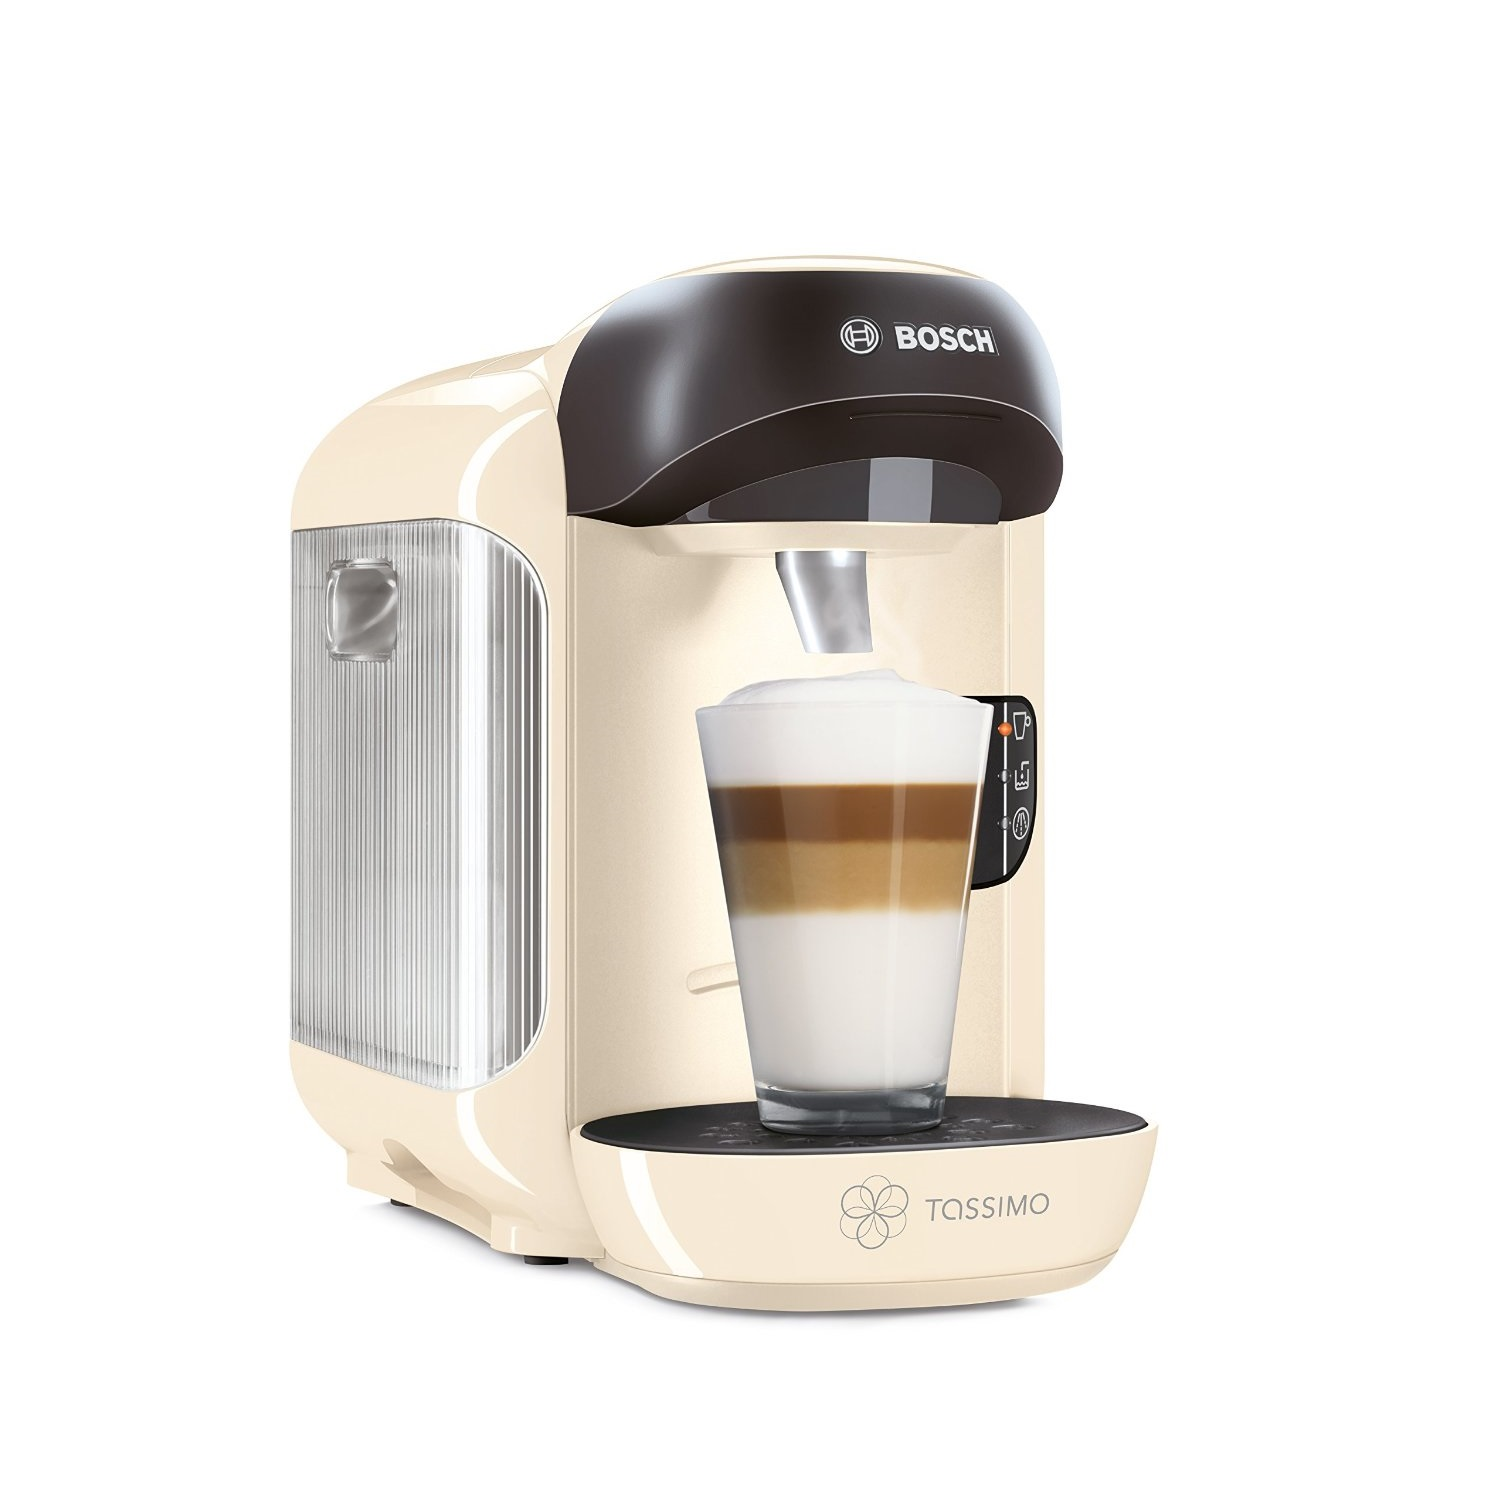 bosch tassimo vivy t12 tas1257gb multi hot cold drinks pod machine cream around the clock offers. Black Bedroom Furniture Sets. Home Design Ideas